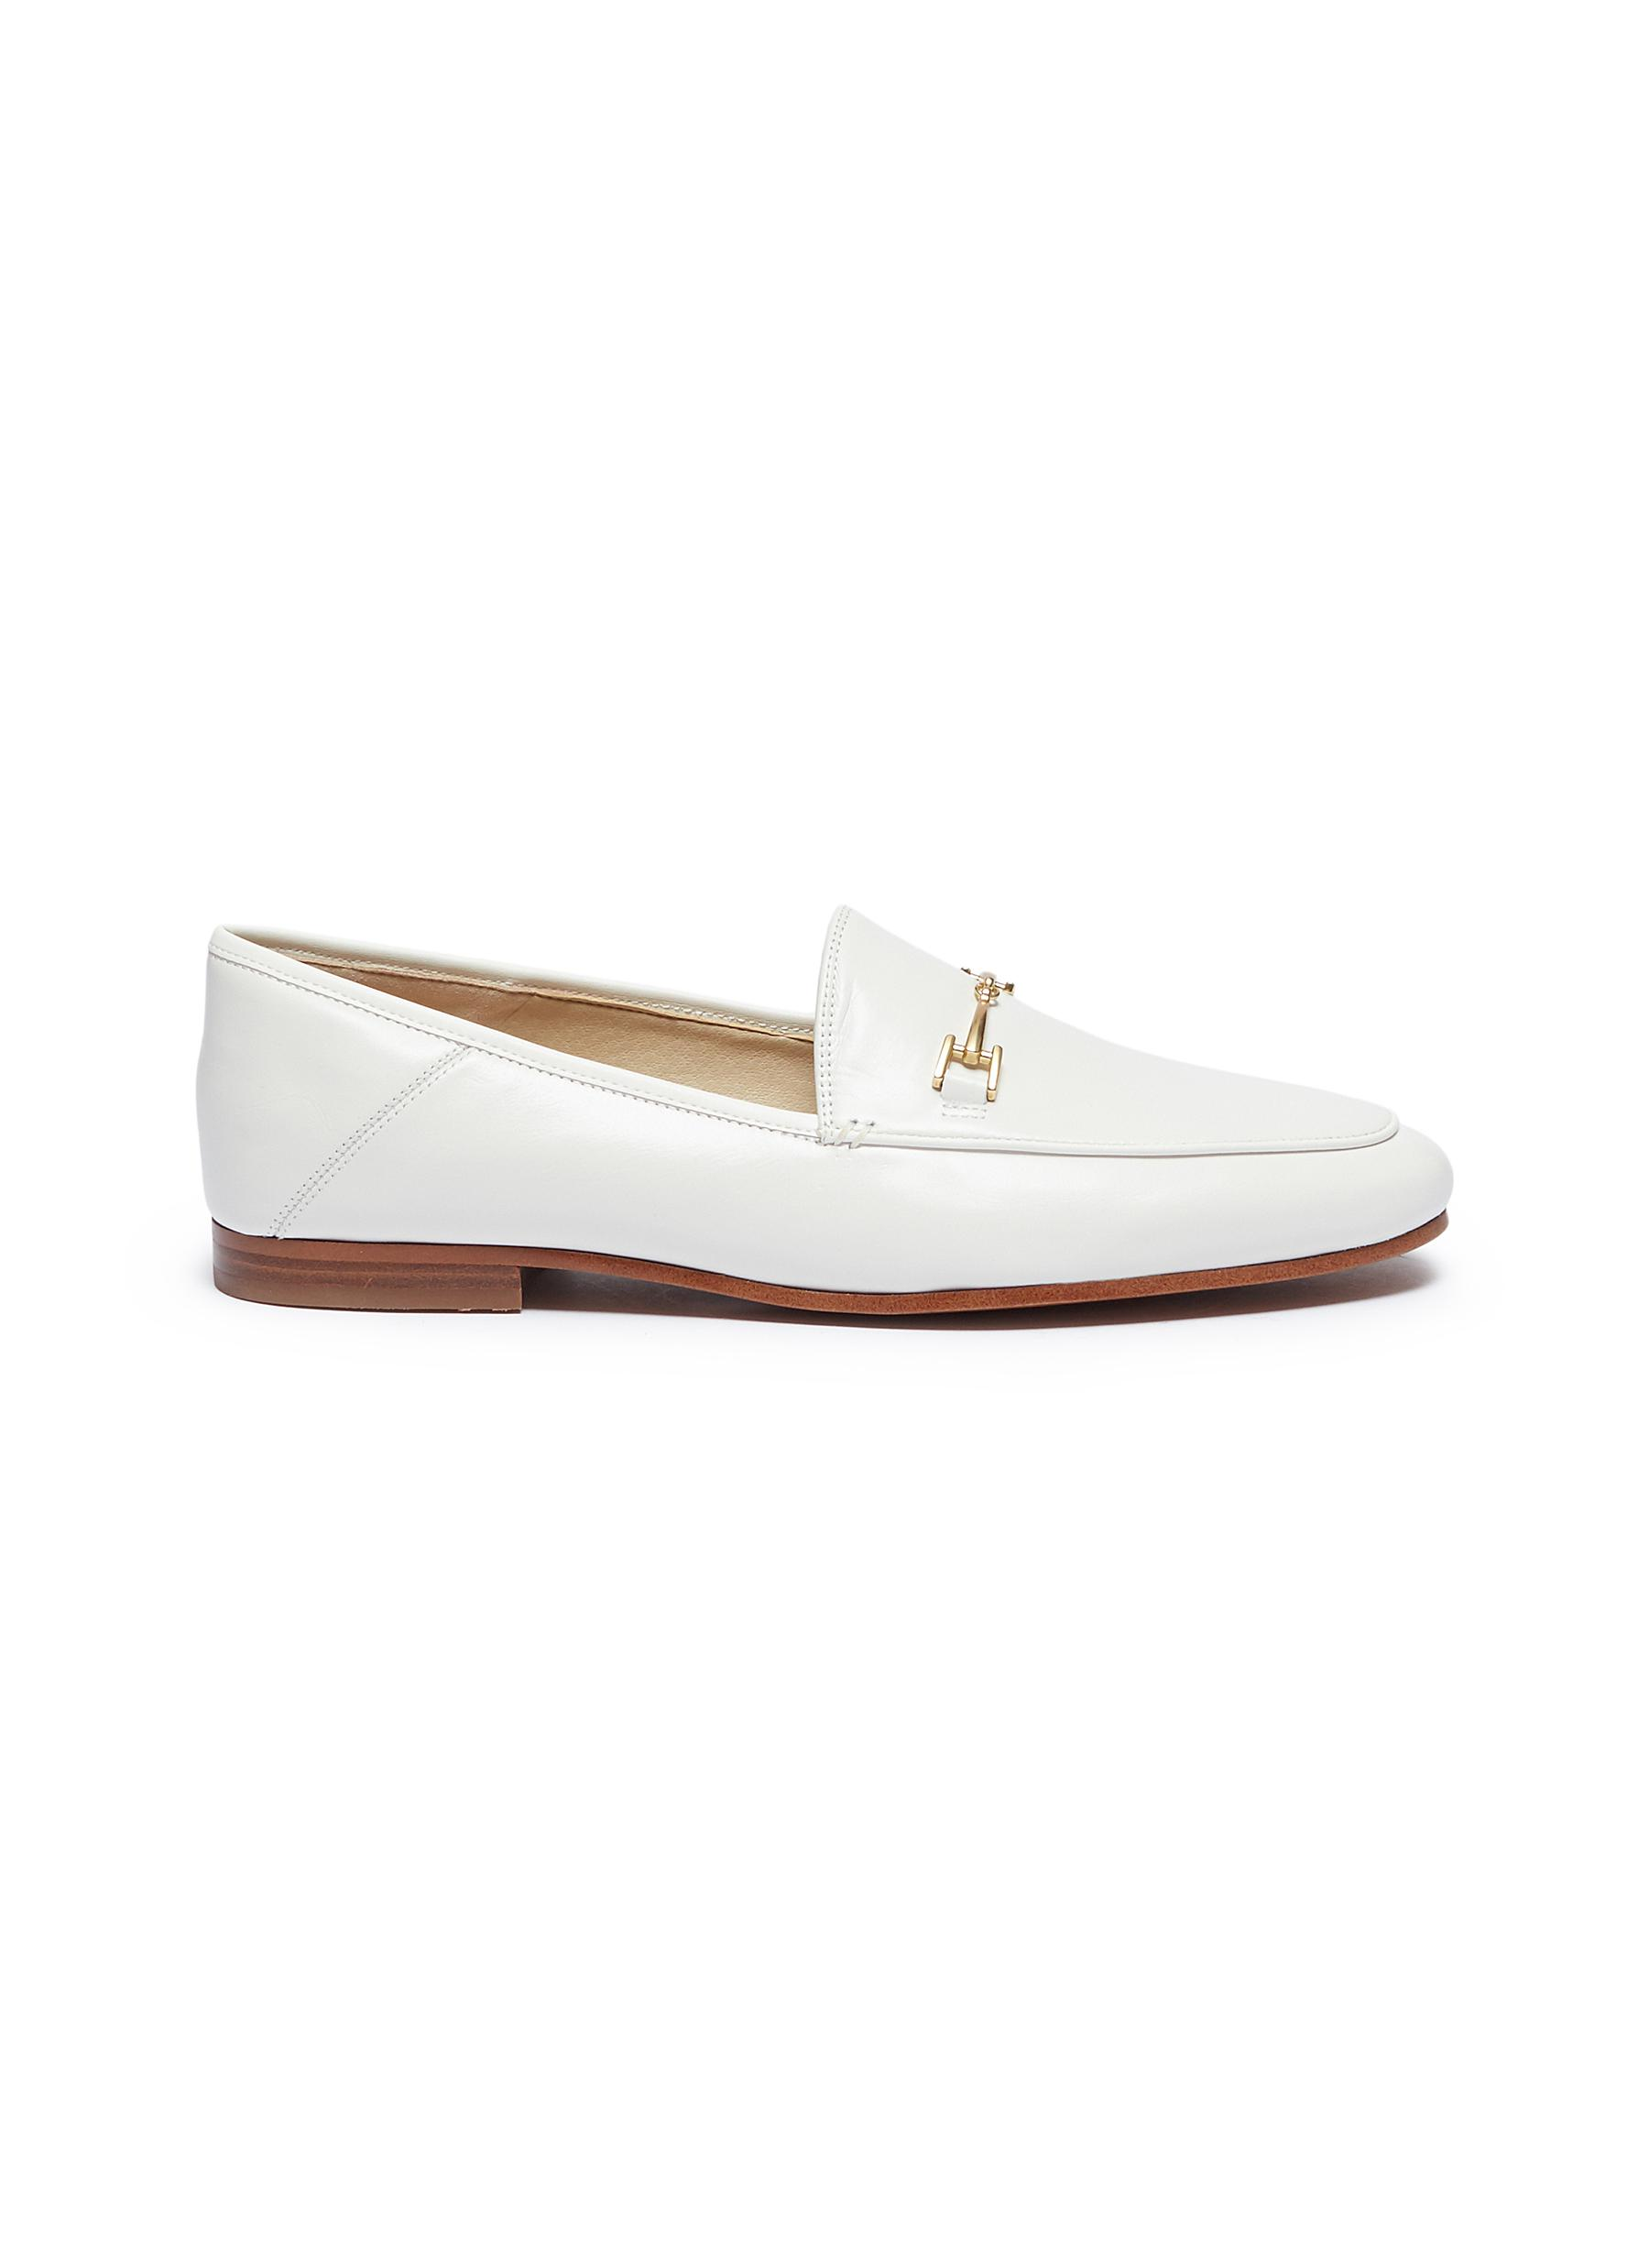 Loraine horsebit leather step-in loafers by Sam Edelman